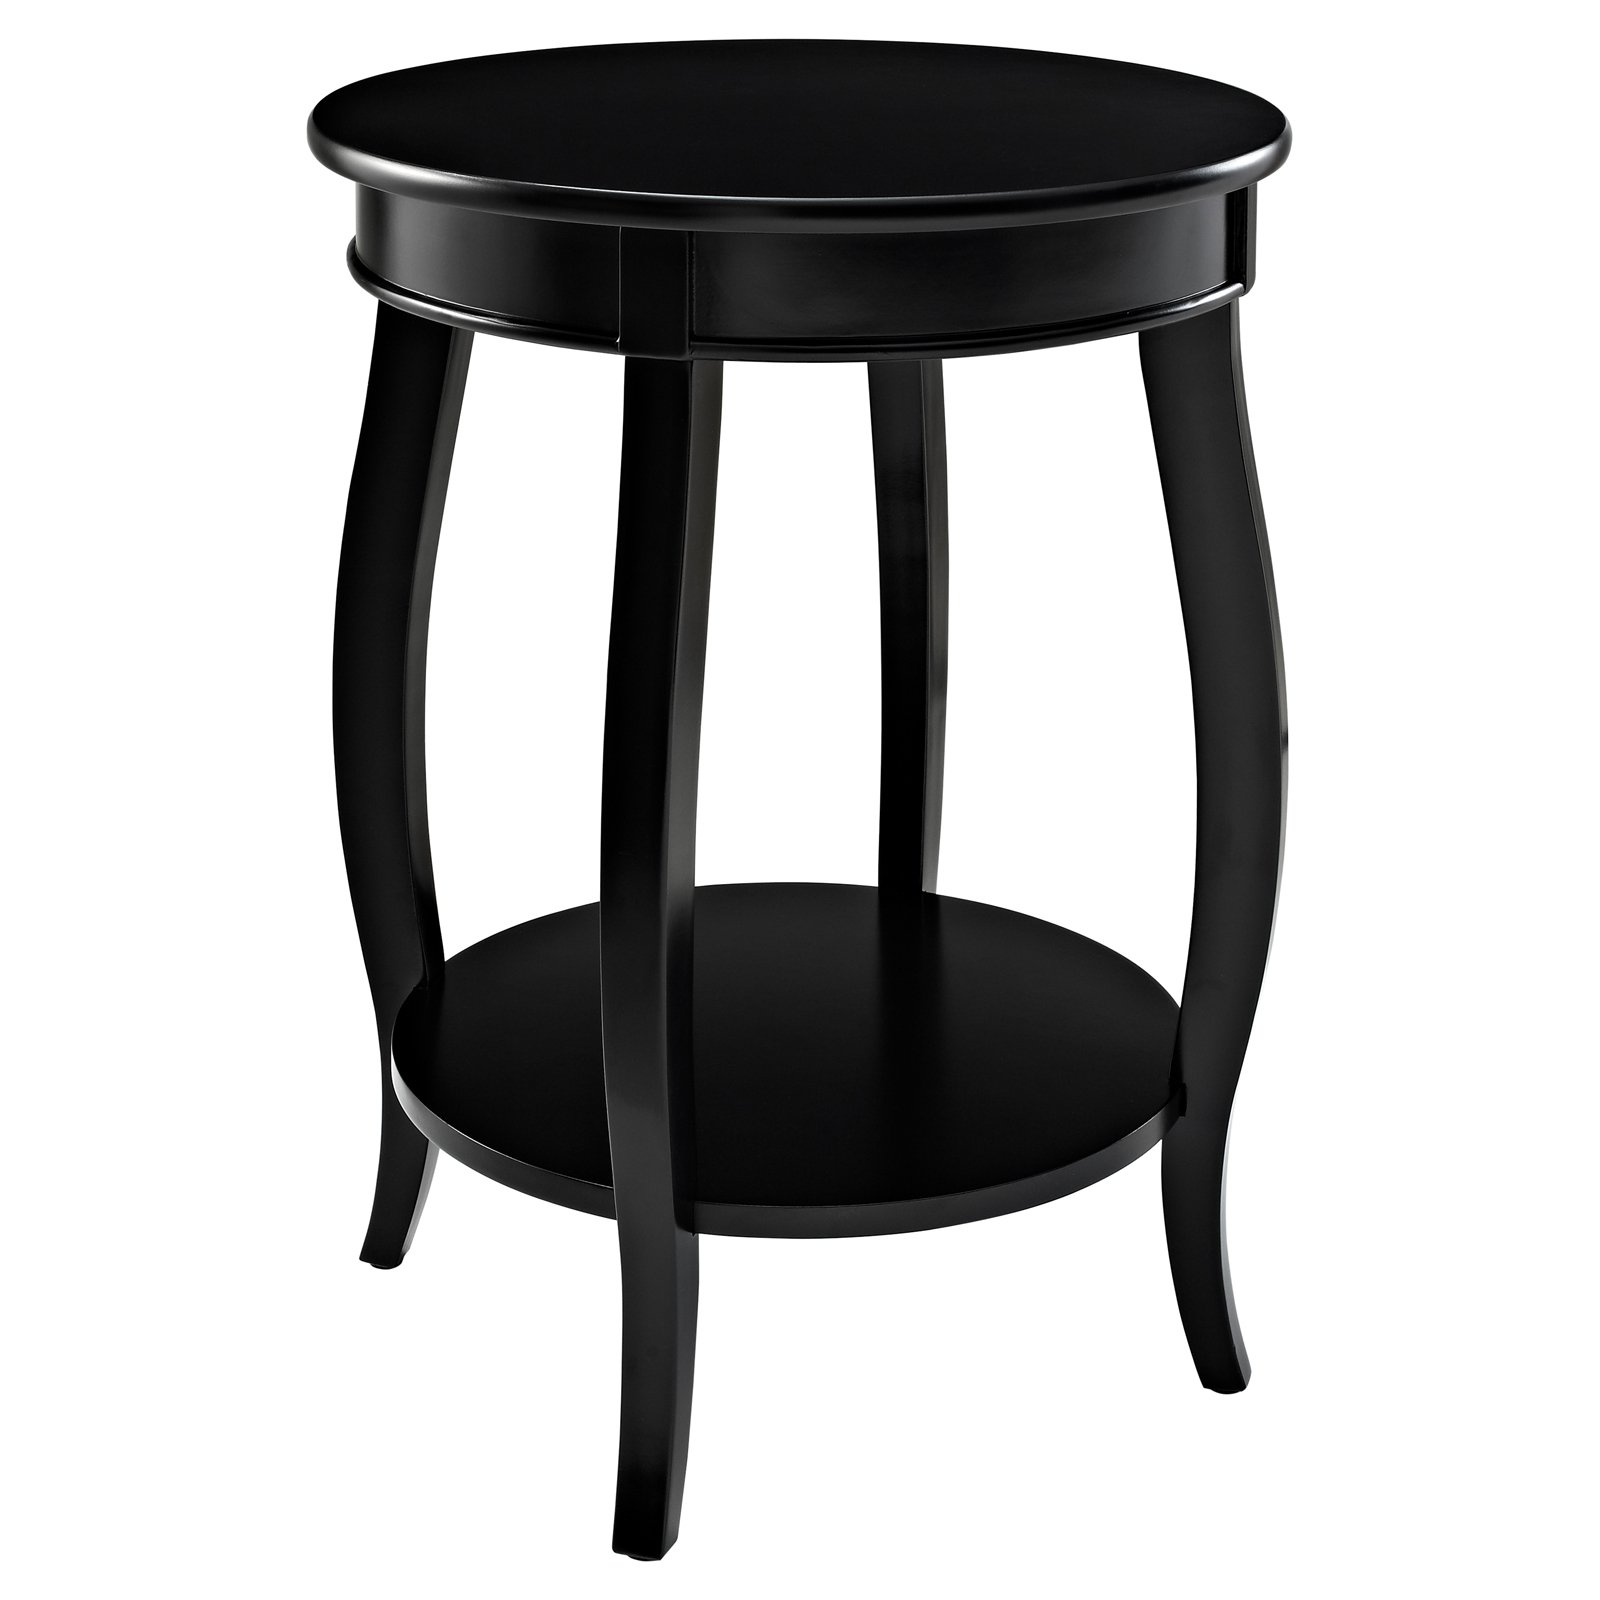 Powell Round Table with Shelf, Black